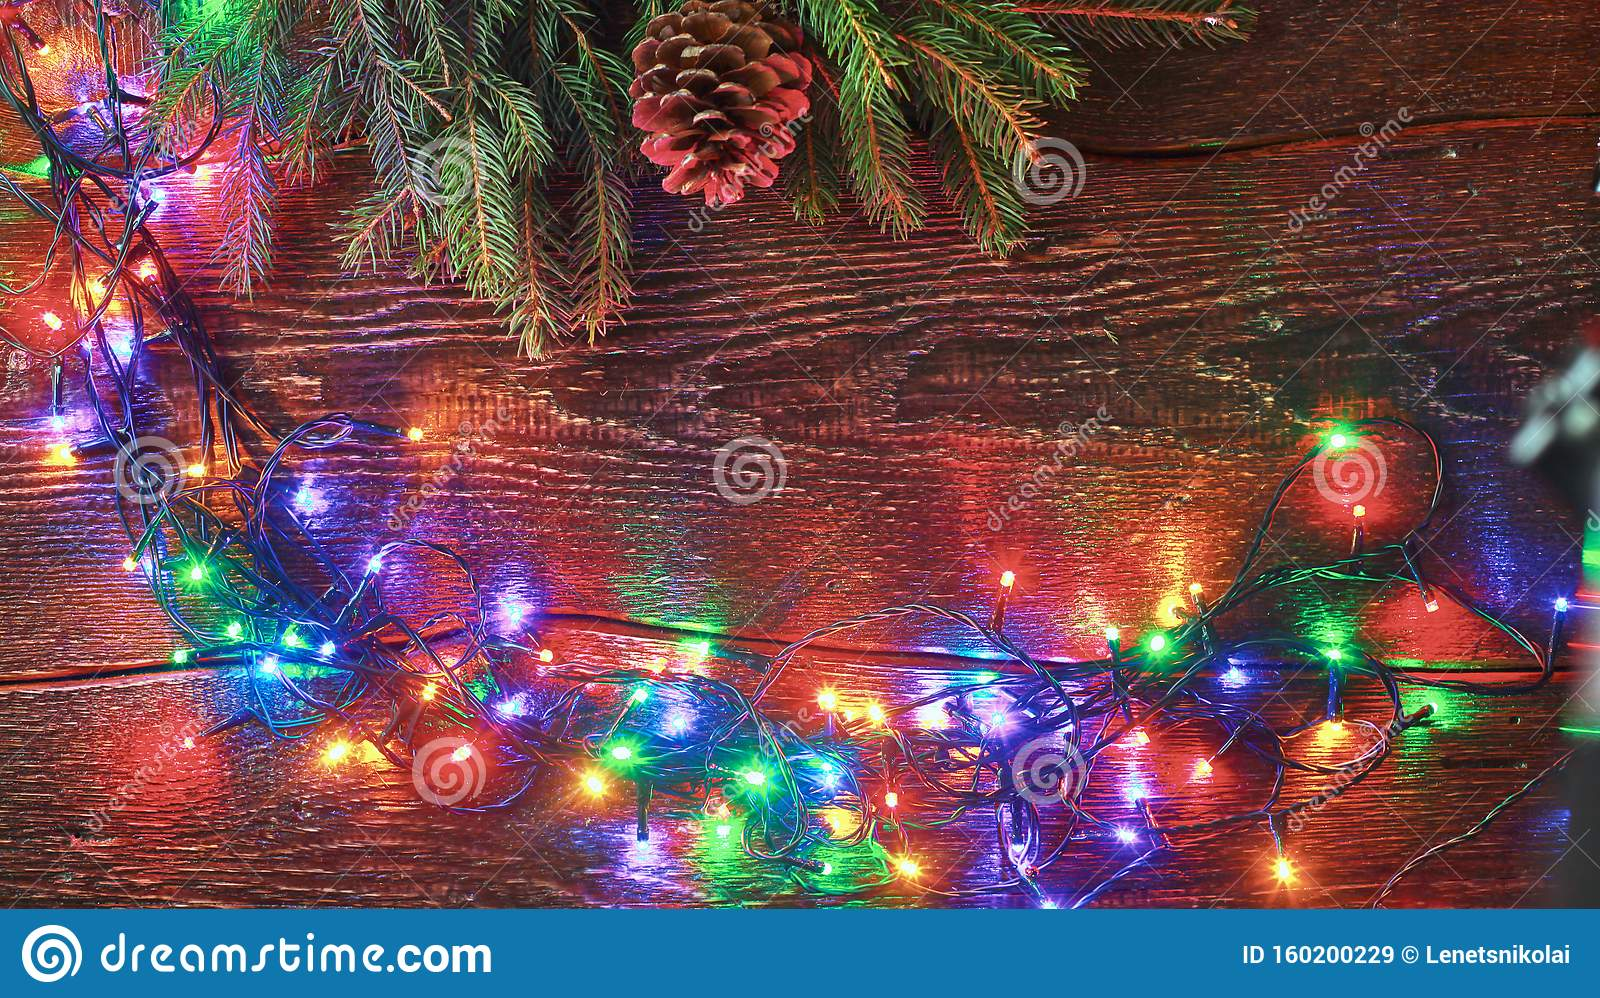 Colorful Christmas Tree Lights On White Natural Wooden Table Copy Space At The Bottom Flat Lay Top View Stock Image Image Of Card Gift 160200229